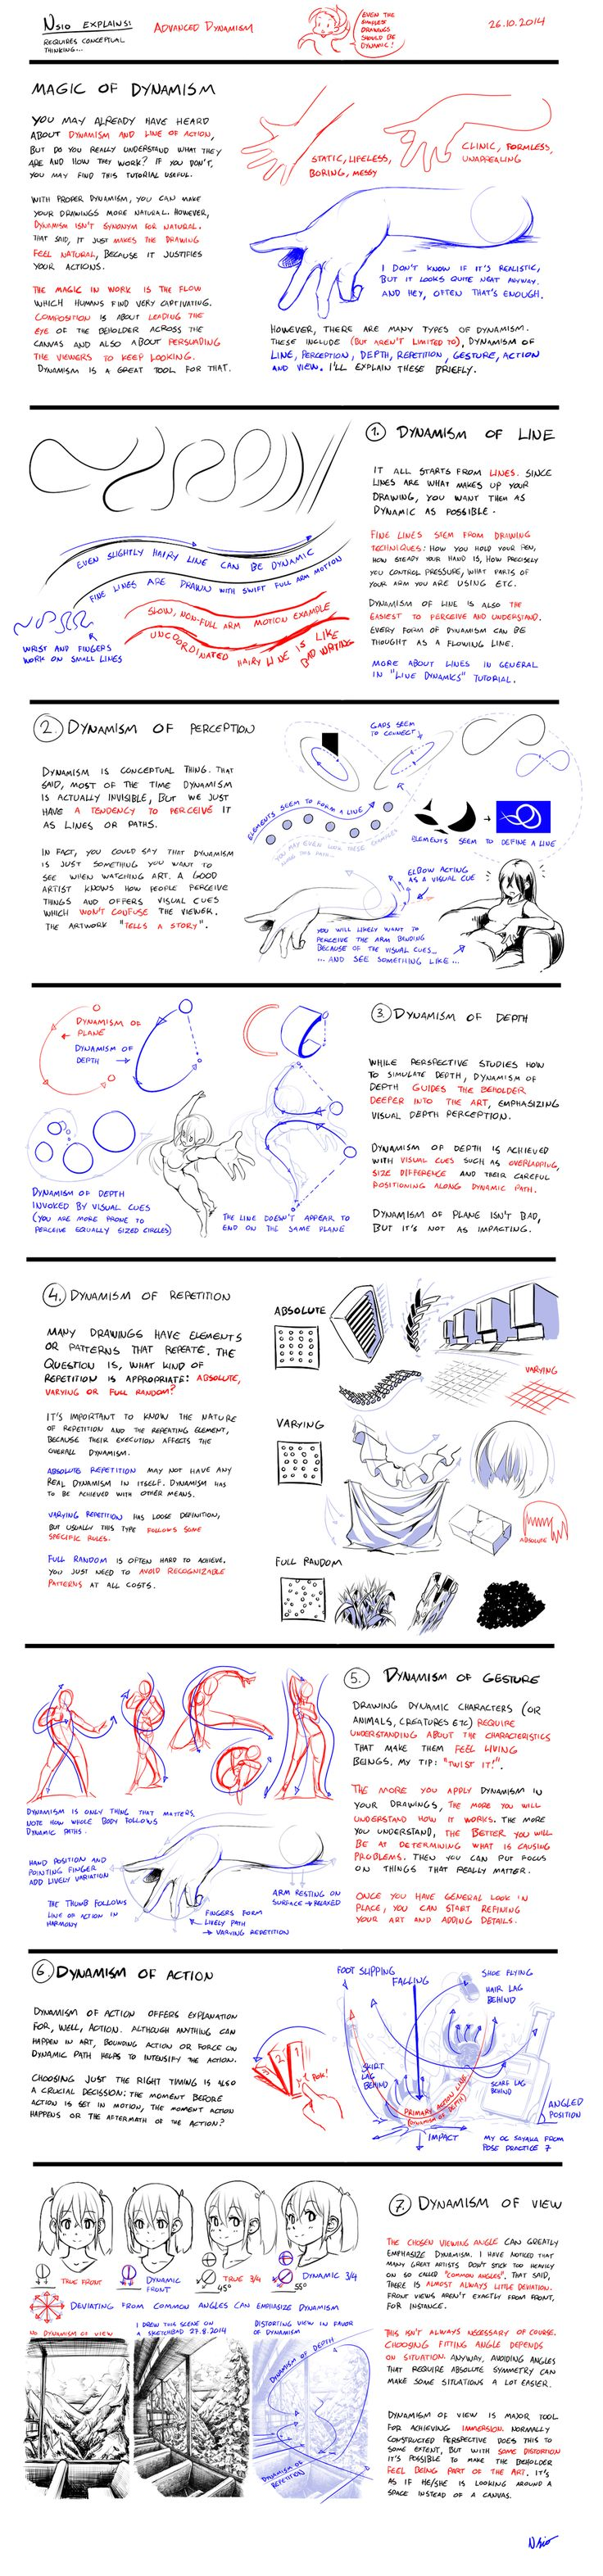 Nsio Explains: Advanced Dynamism by Nsio on DeviantArt - elements of dynamic drawing